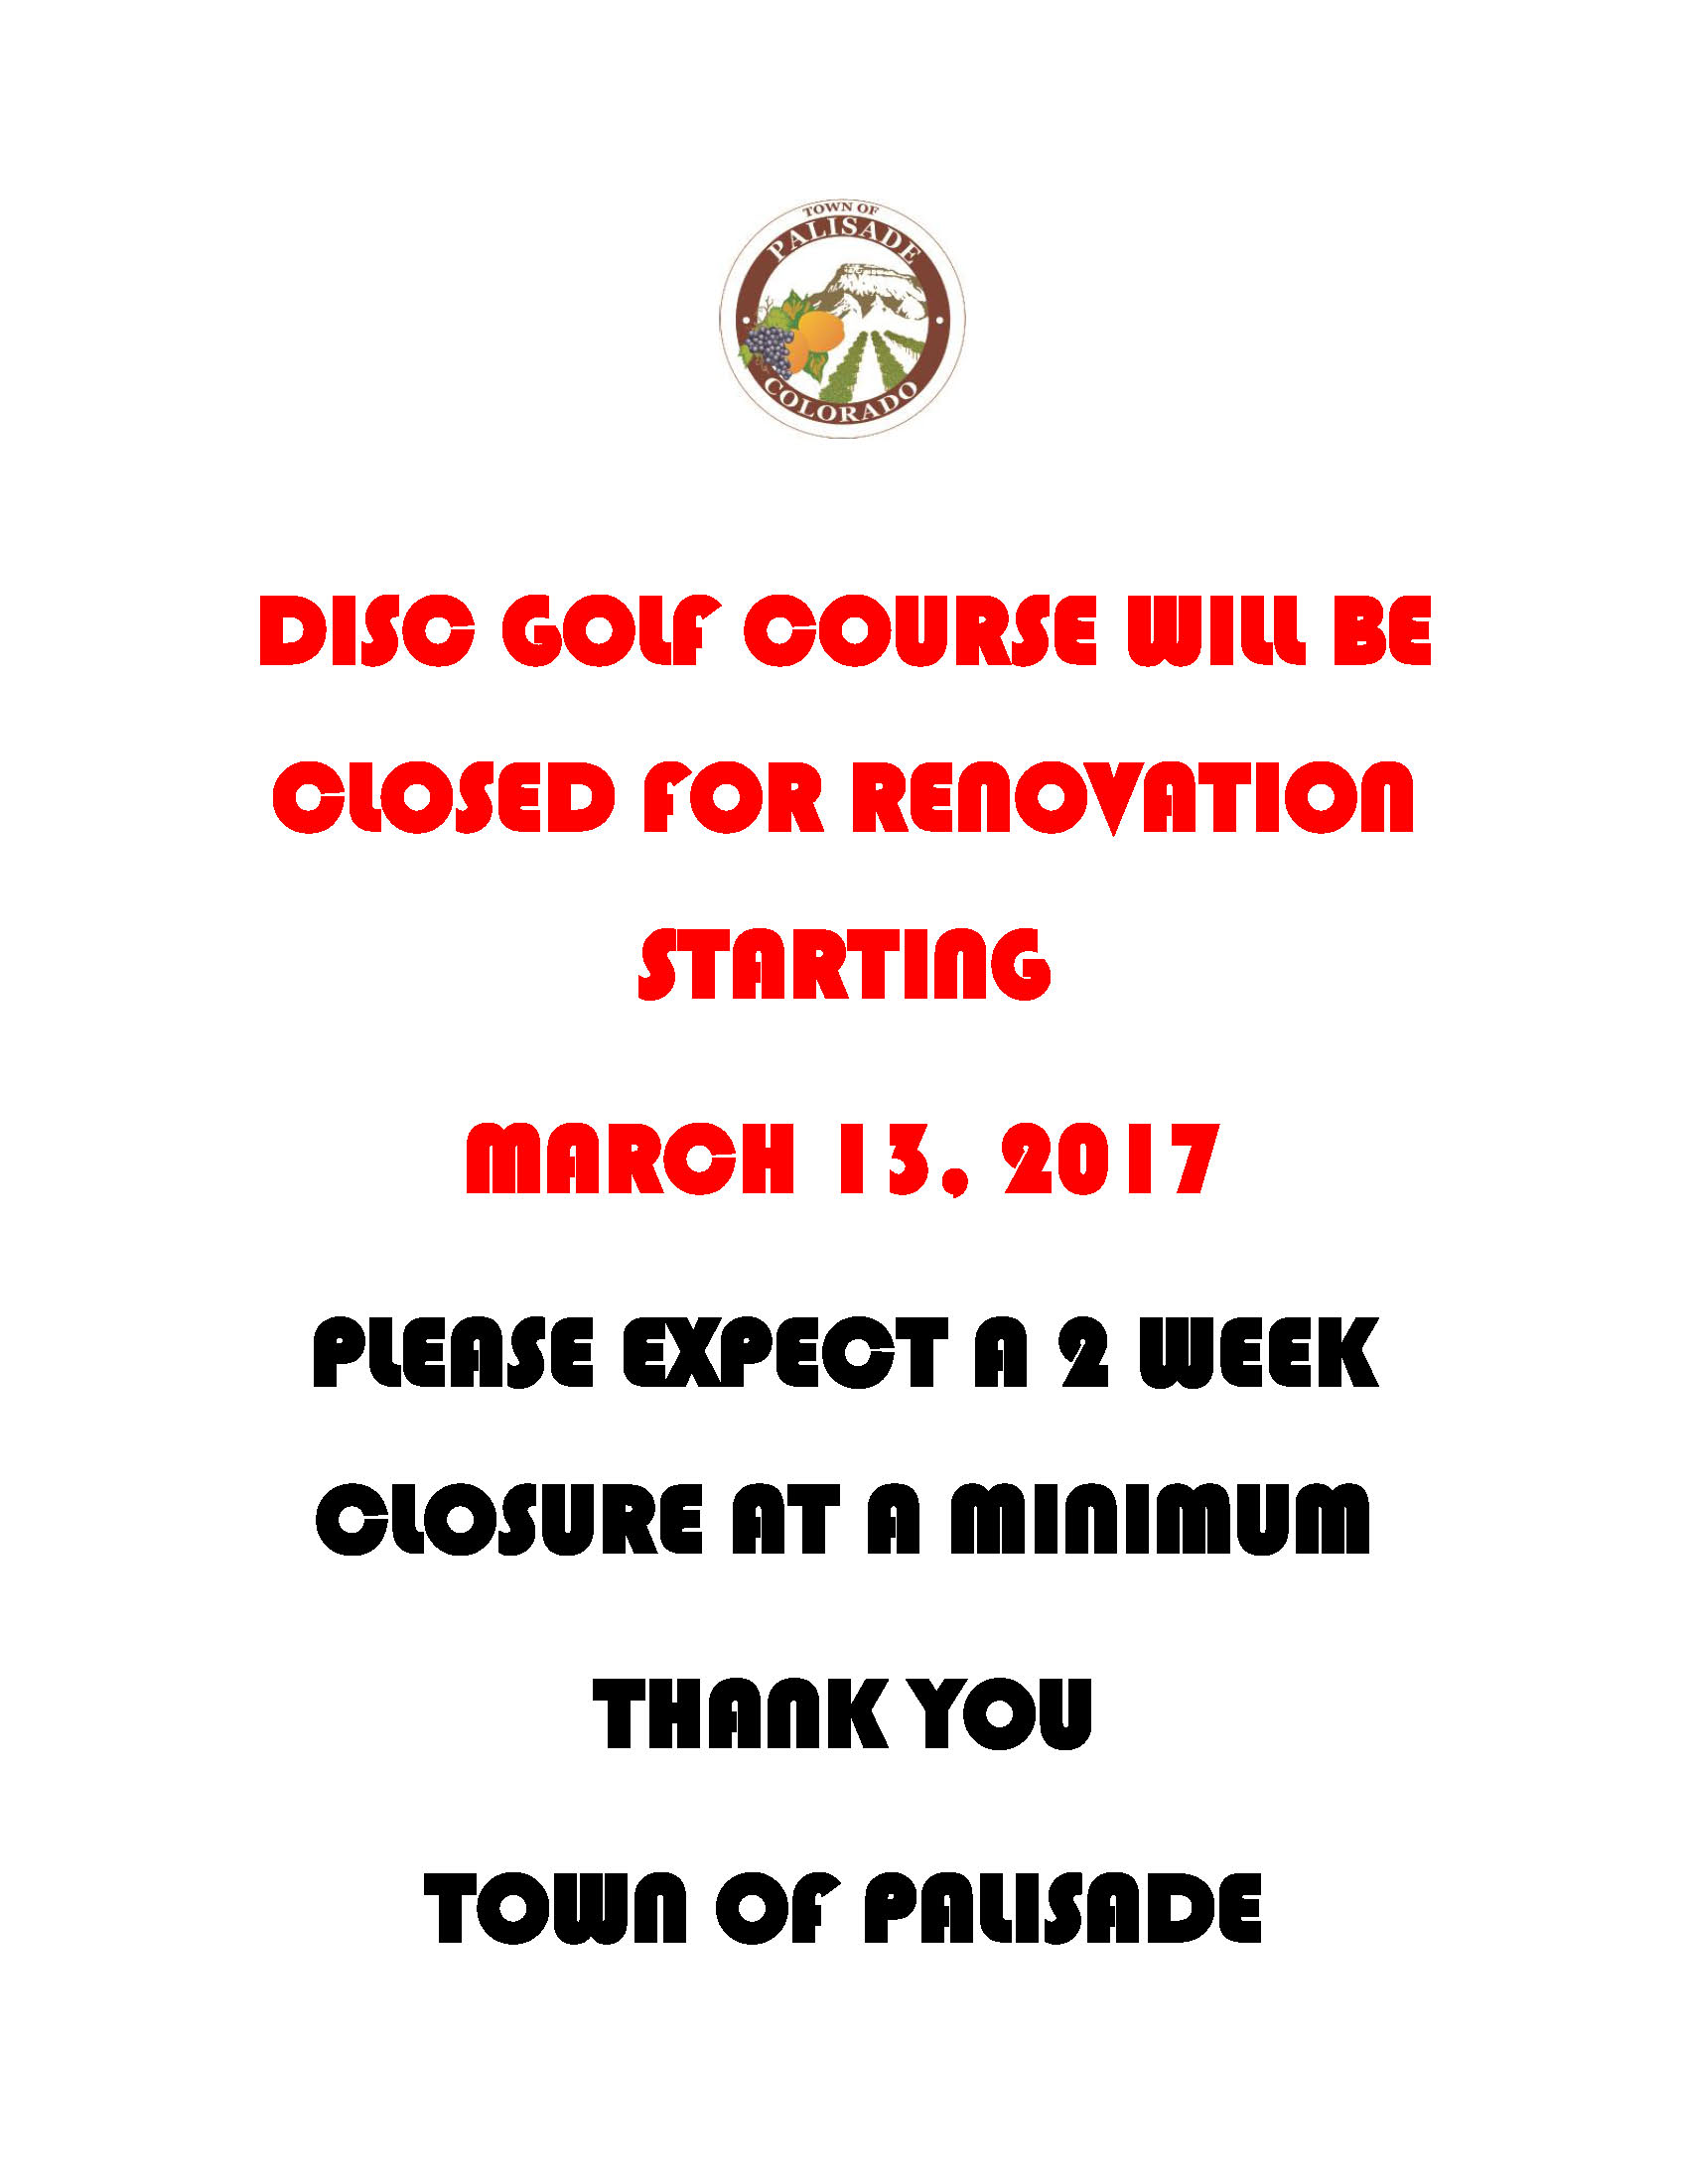 DISC GOLF CLOSED FOR RENOVATION